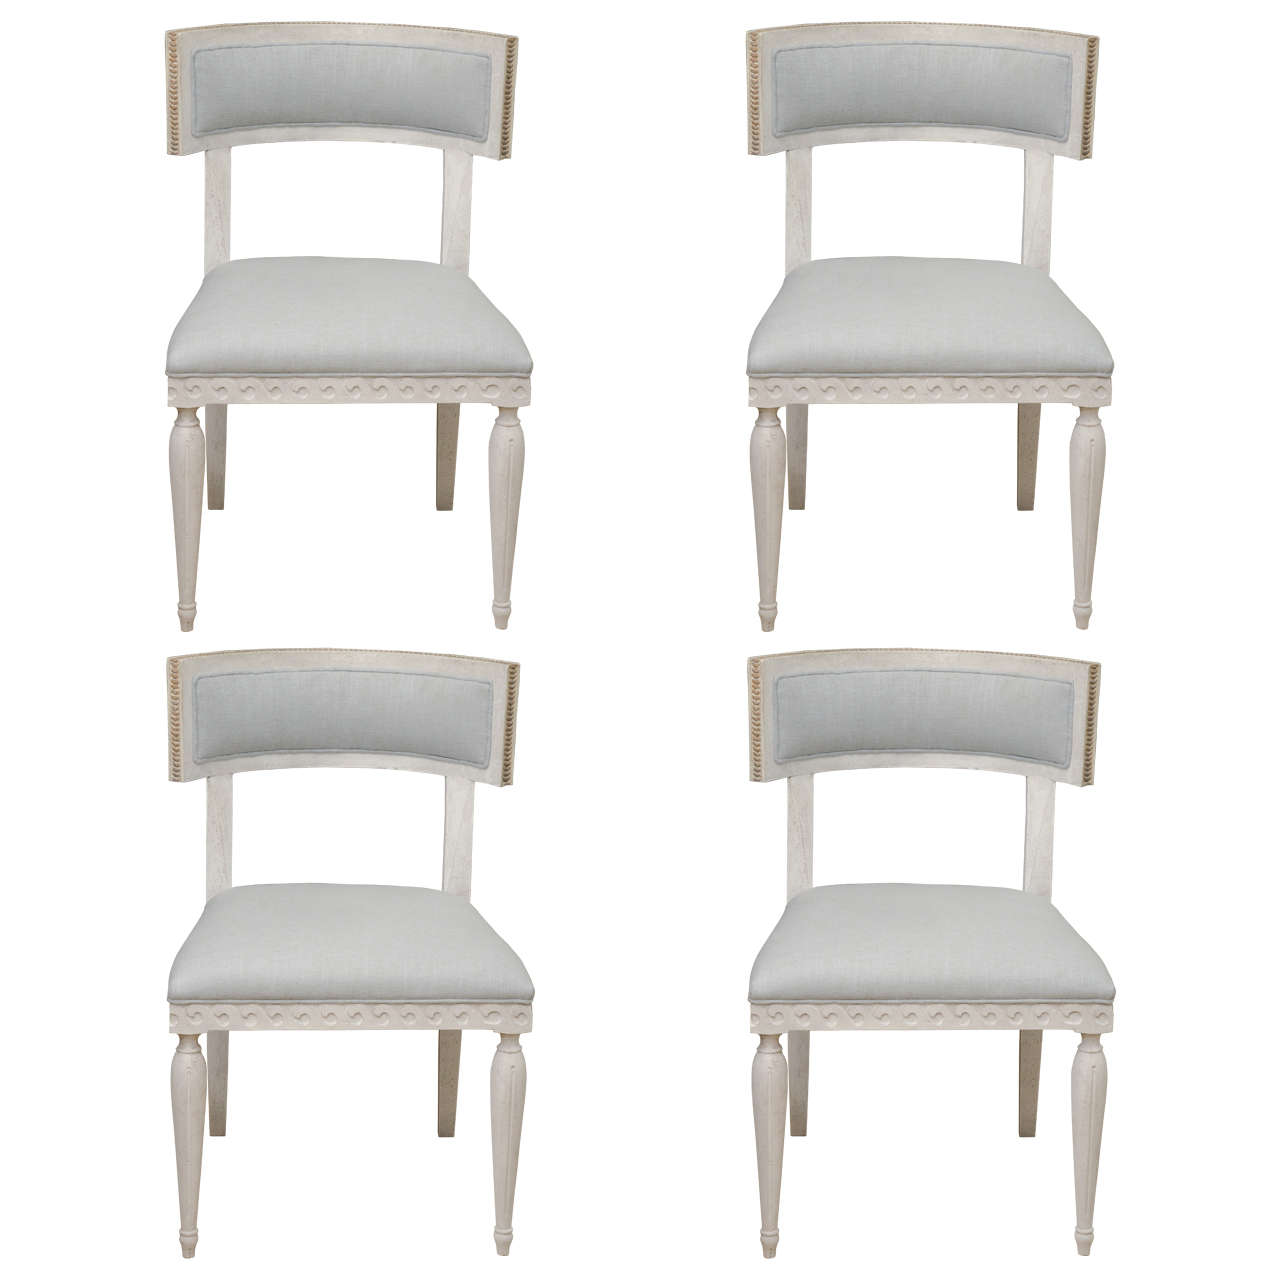 Set of 4 Chalk White Round Back Dining Chairs at 1stdibs